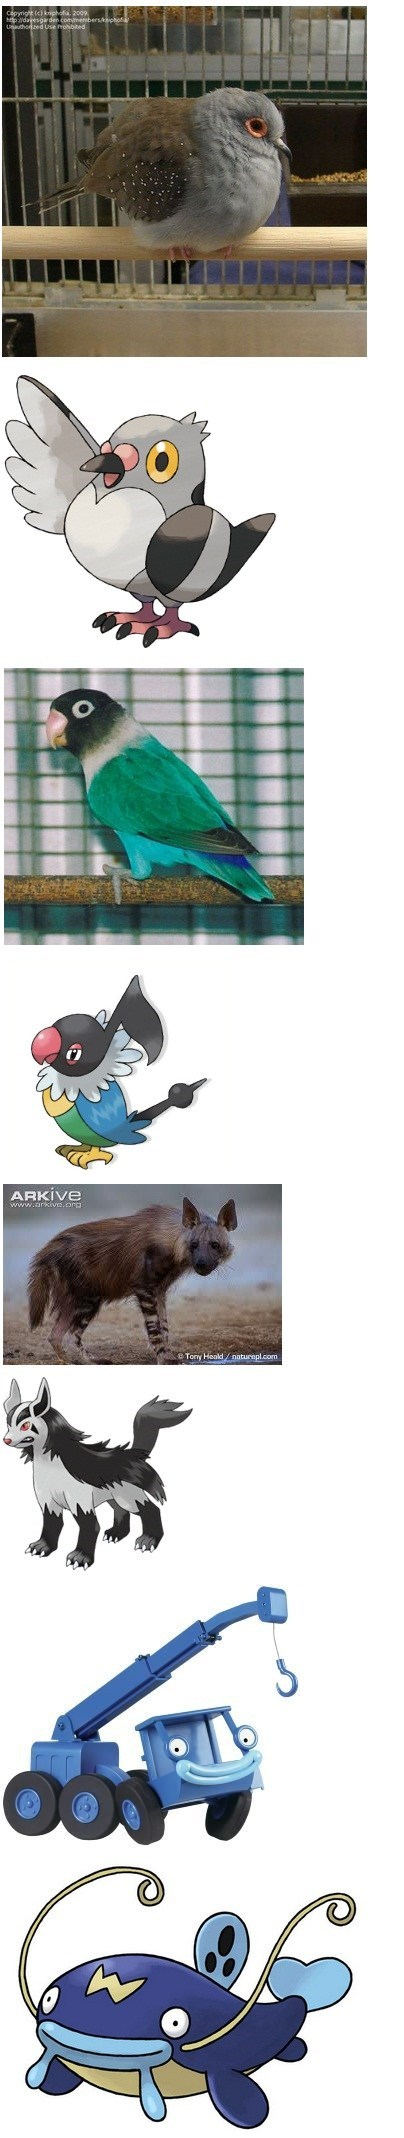 Pokémon whiscash IRL animals